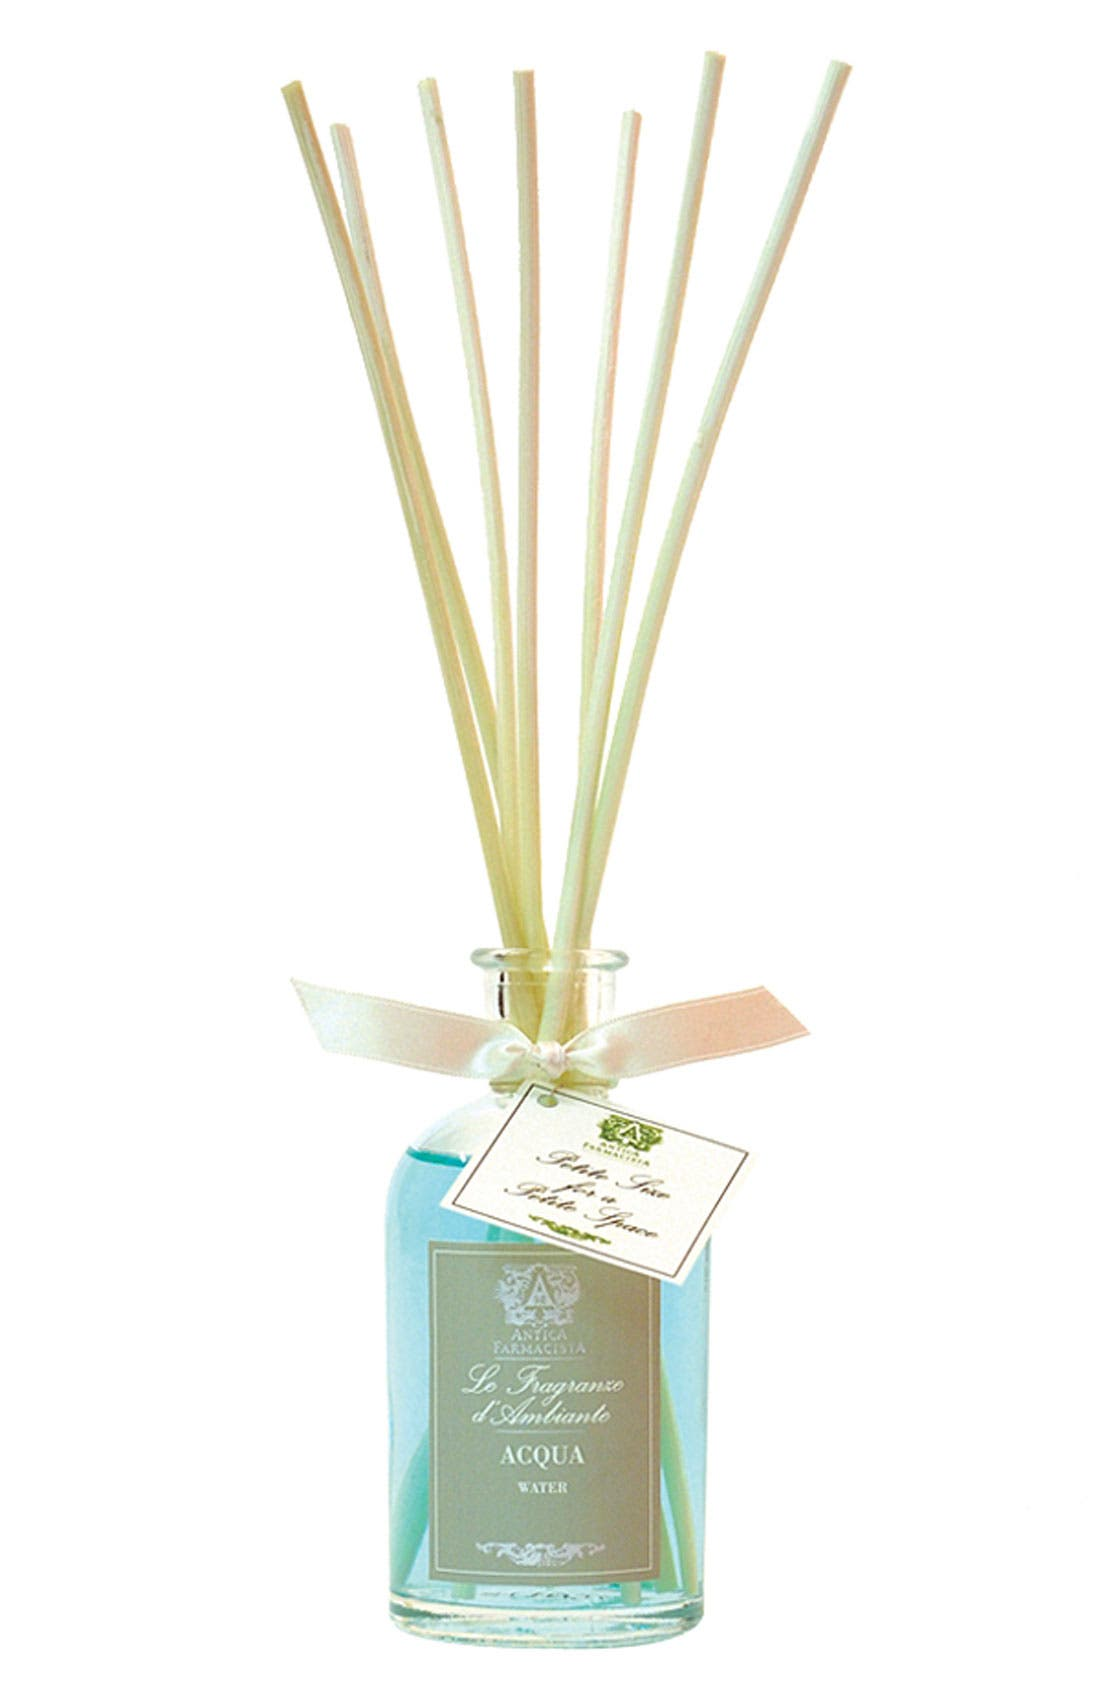 Alternate Image 1 Selected - Antica Farmacista Acqua Home Ambiance Perfume (3.3 oz.)